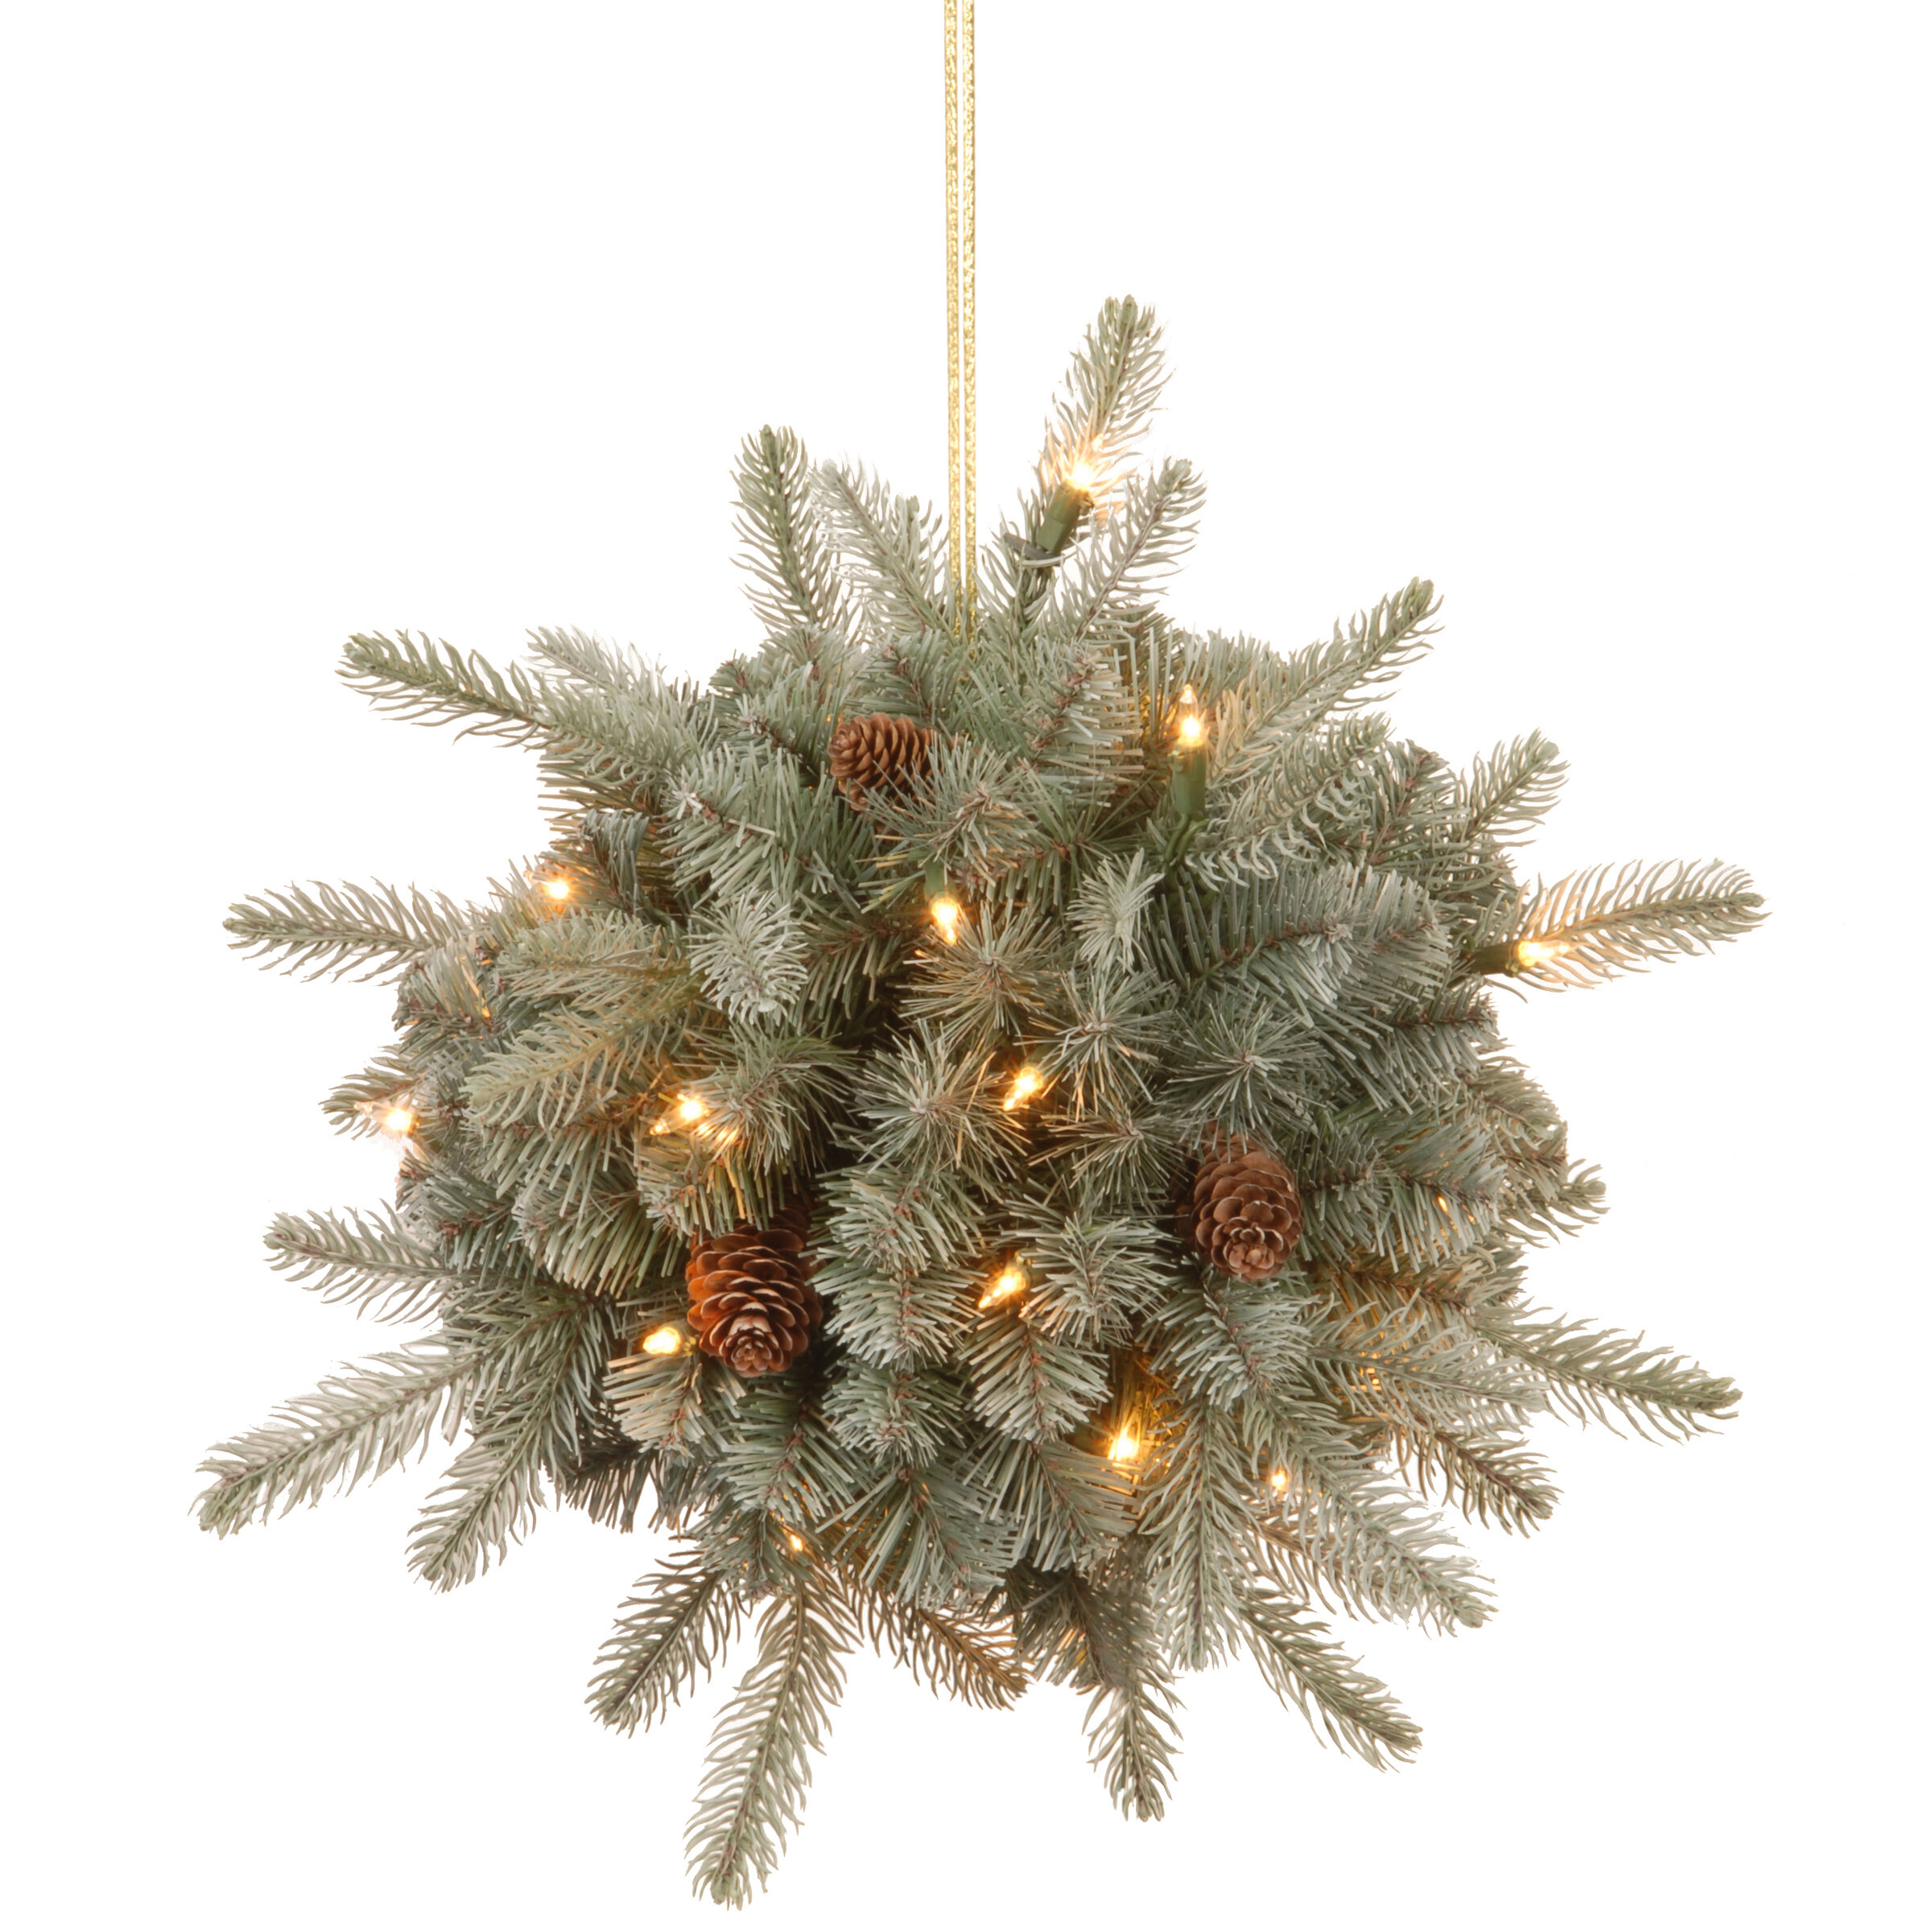 Darby Home Co Frosted Arctic Spruce Kissing Ball & Reviews | Wayfair